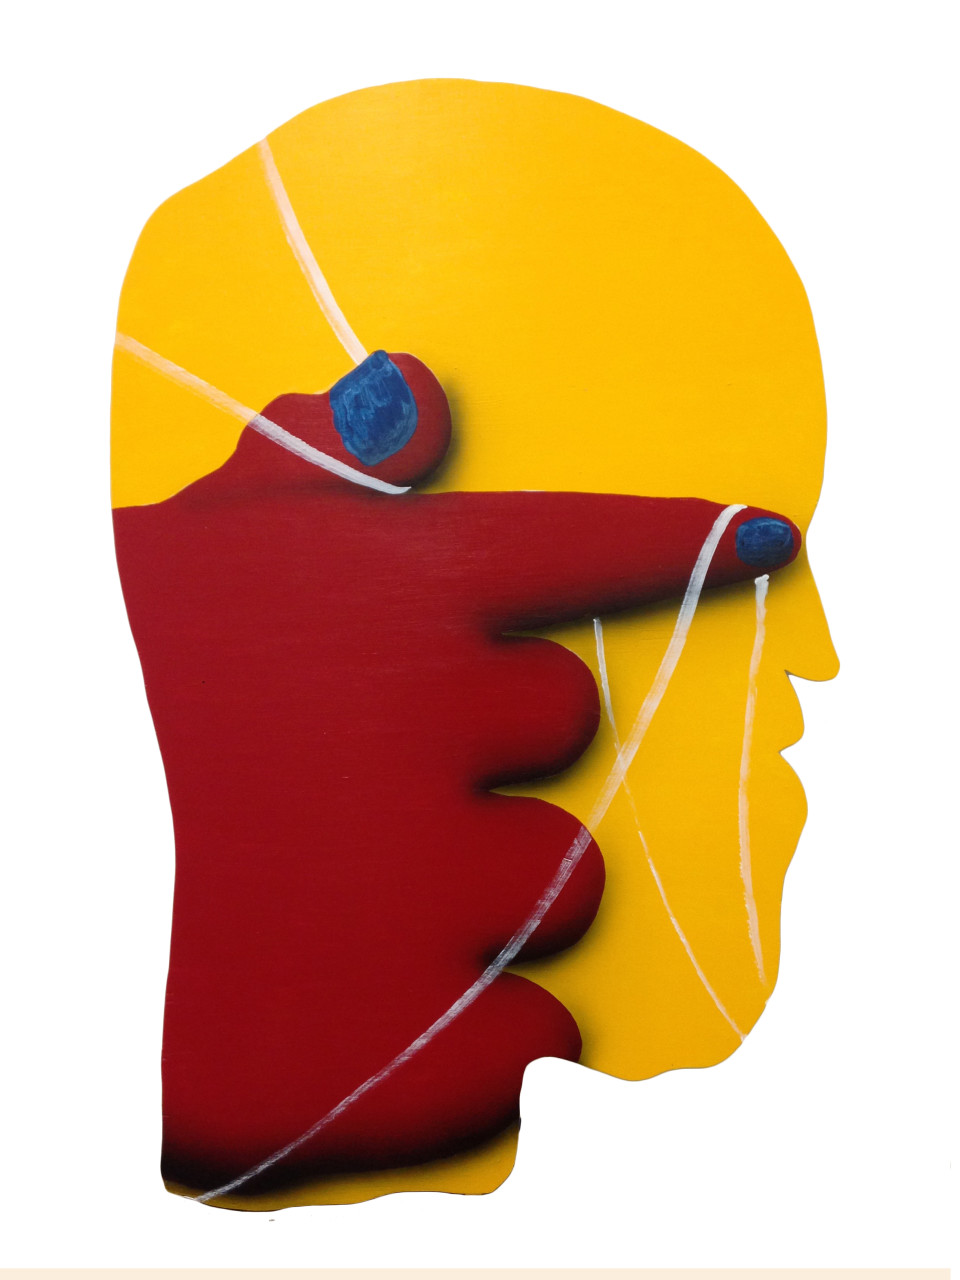 James English Leary Cameo (Red Hand w/ Thread on Yellow Head), 2018 Acrylic on Shaped Panel 76.2 x 119.4 cm 30 x 47 in